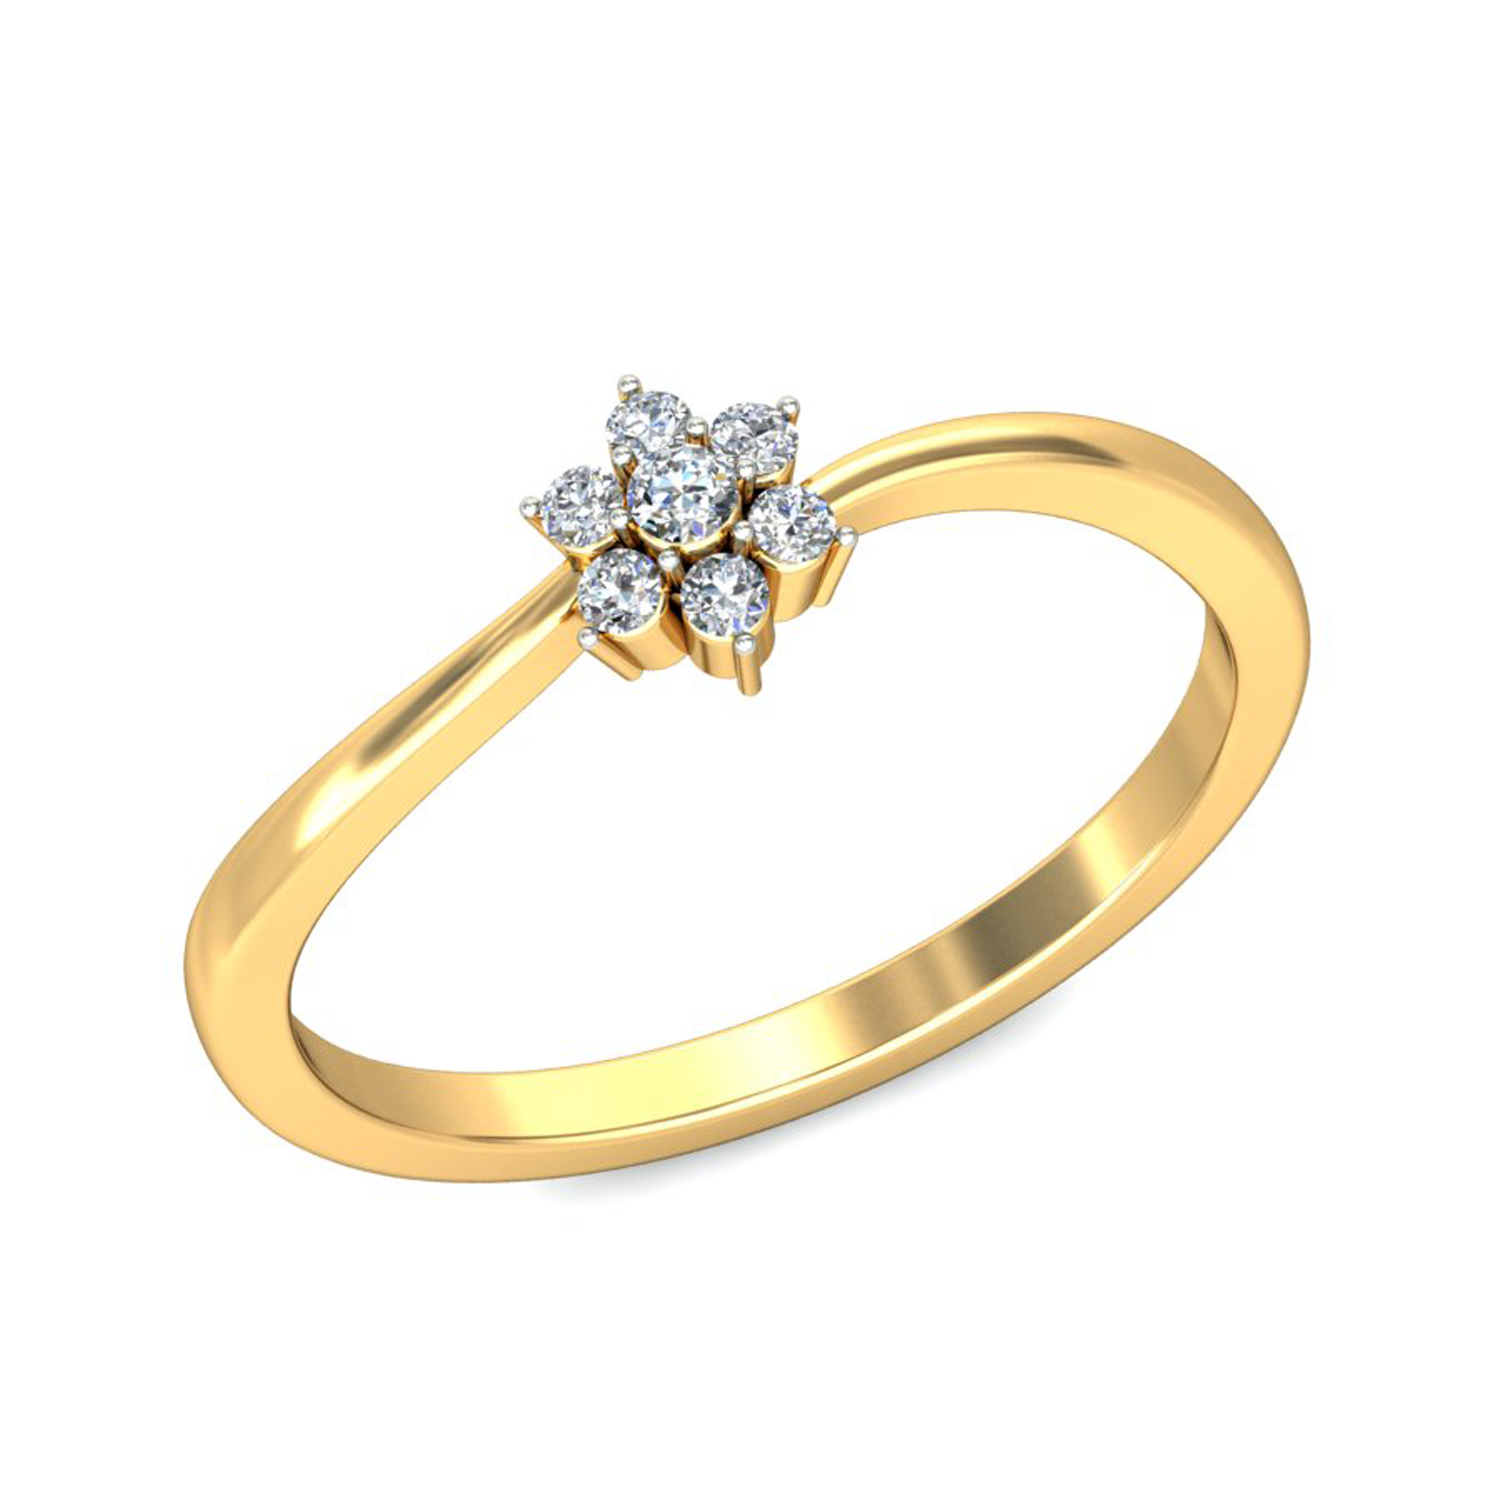 and design parties rings designs wedding yusrablog gold jewelry trend ring for diamond flabbergasting com